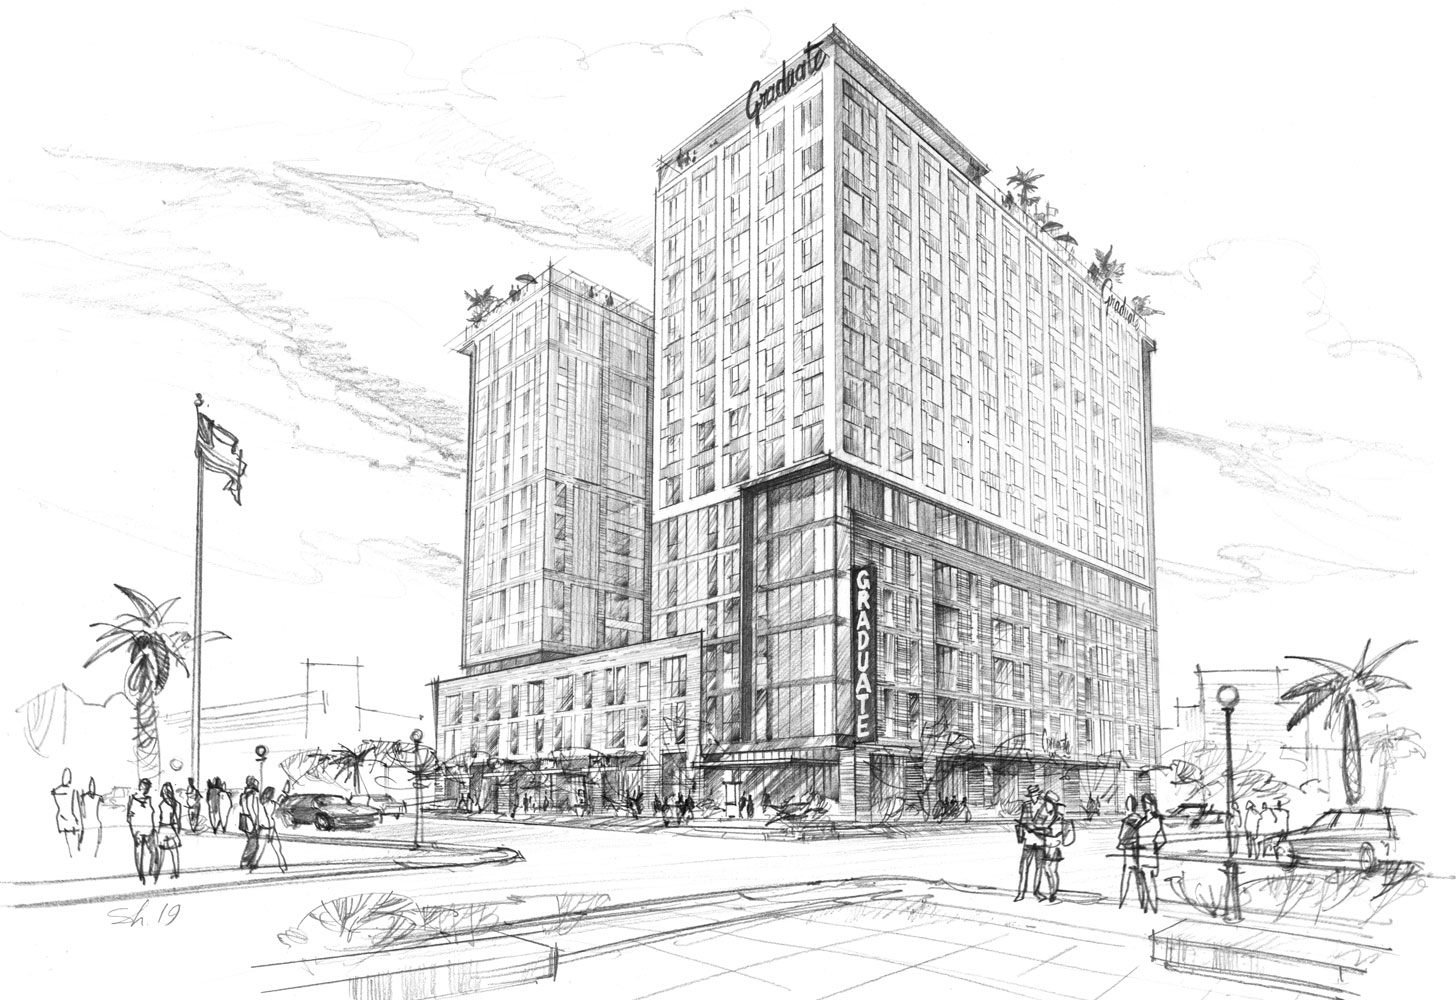 Architectural visualization freehand rendering pencil hotel sketch hand drawing architecture illustration